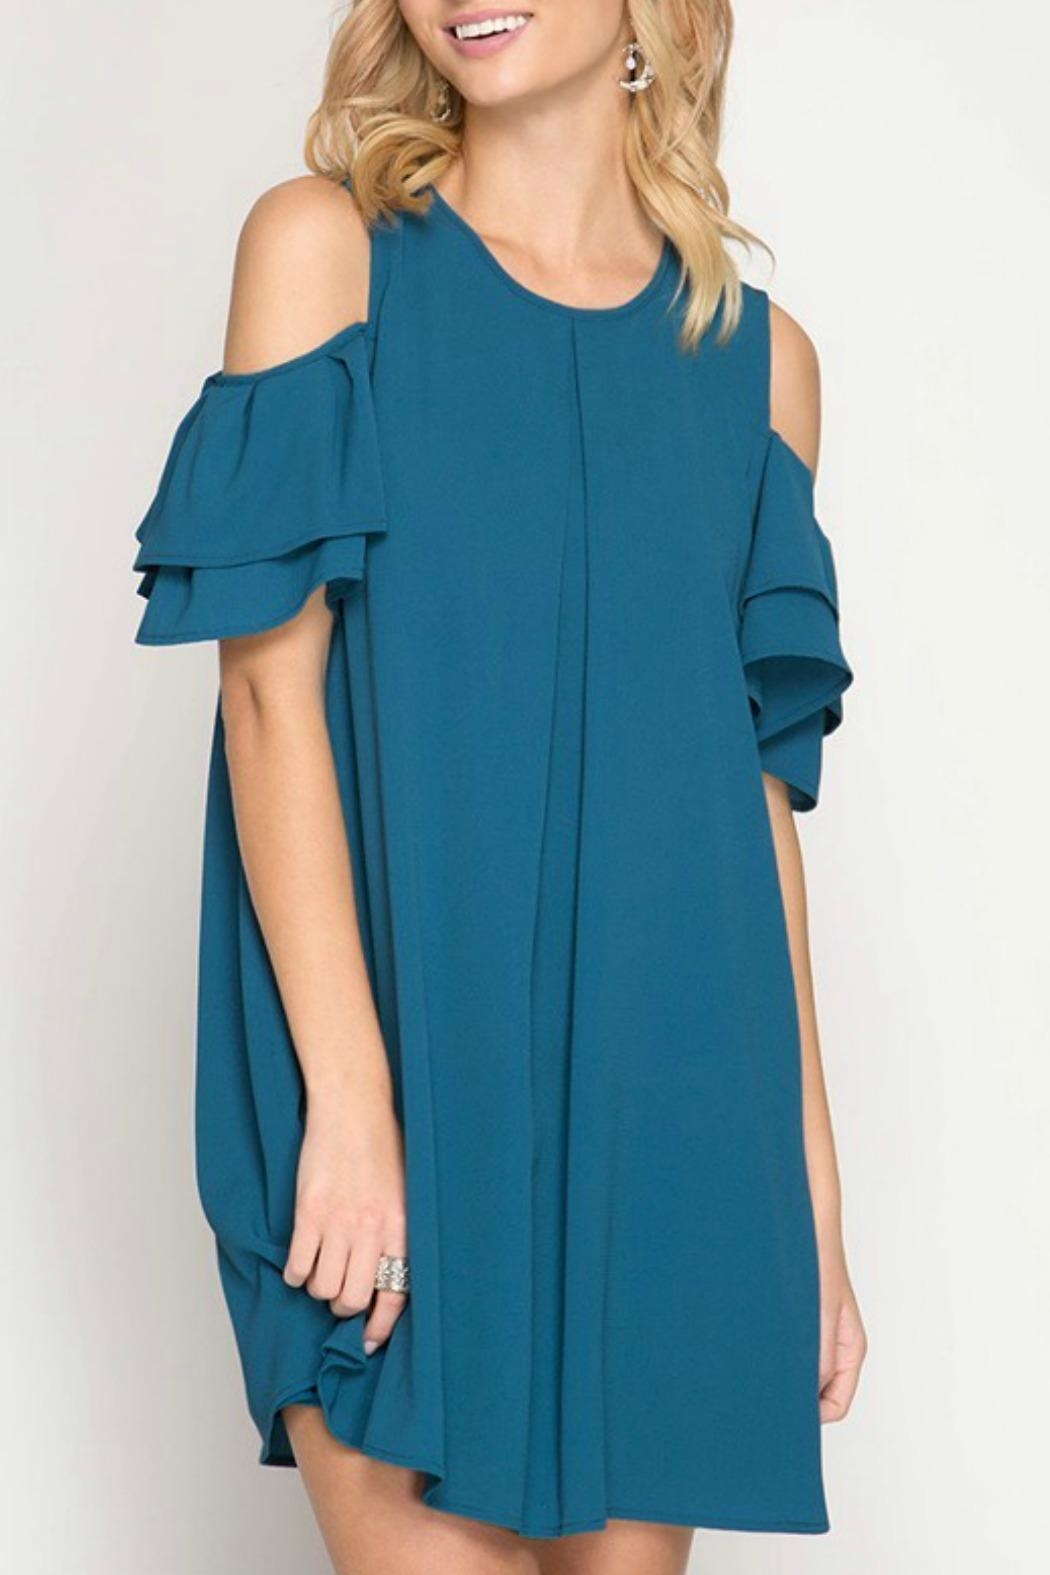 She + Sky Ginny Teal Dress - Front Cropped Image